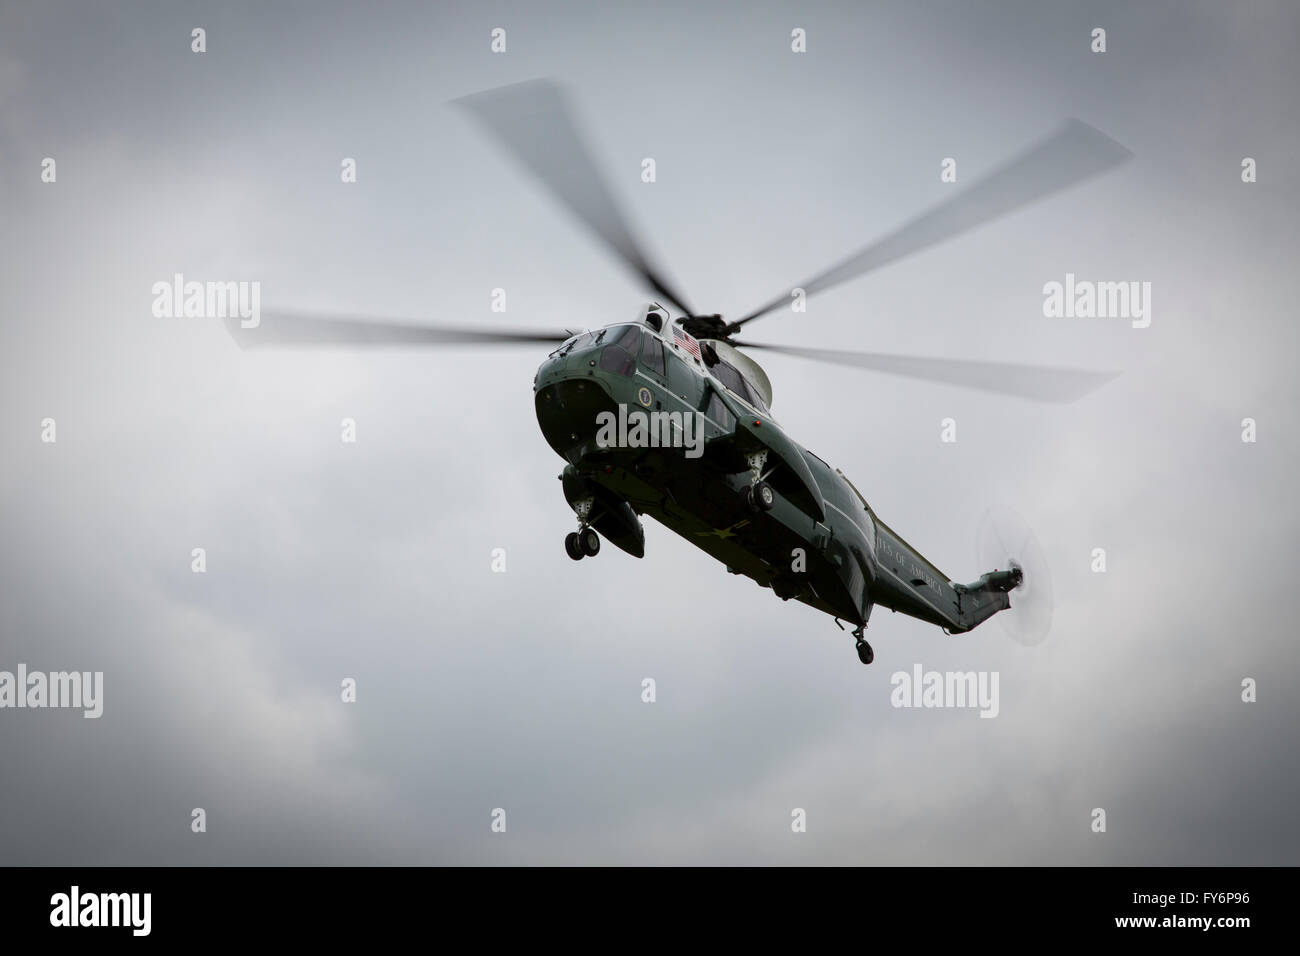 Marine One a VH-3D Sea King helicopter carrying the President of the US landing at Windsor Castle in the UK - Stock Image